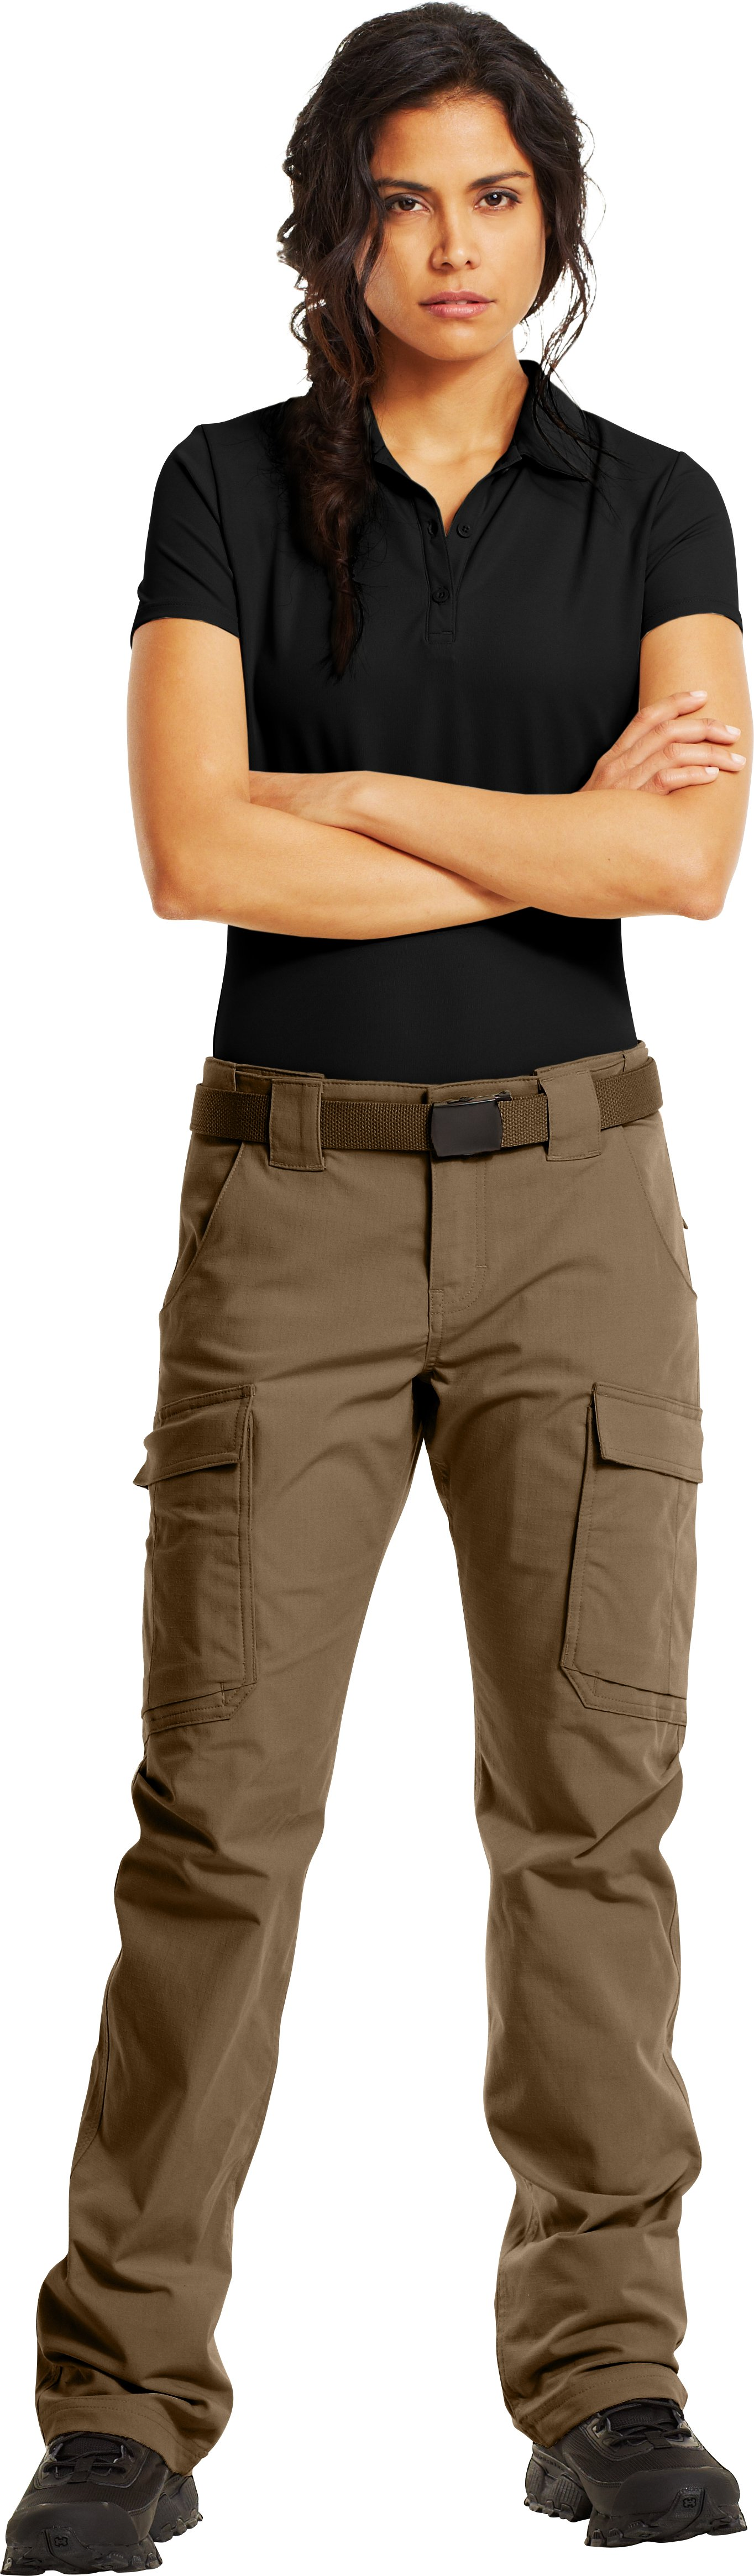 Women's Tactical Duty Pants, Coyote Brown, Front